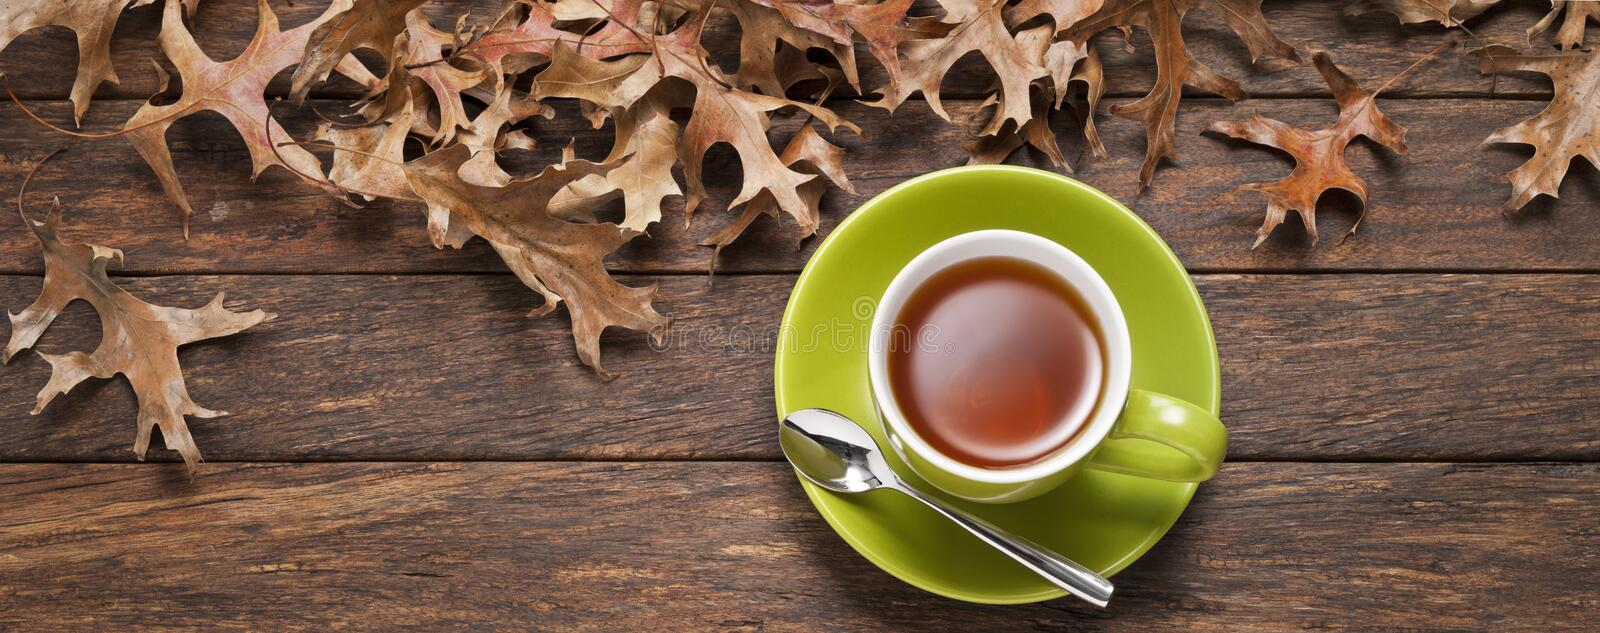 Leaves Wood Tea Cup Background royalty free stock image